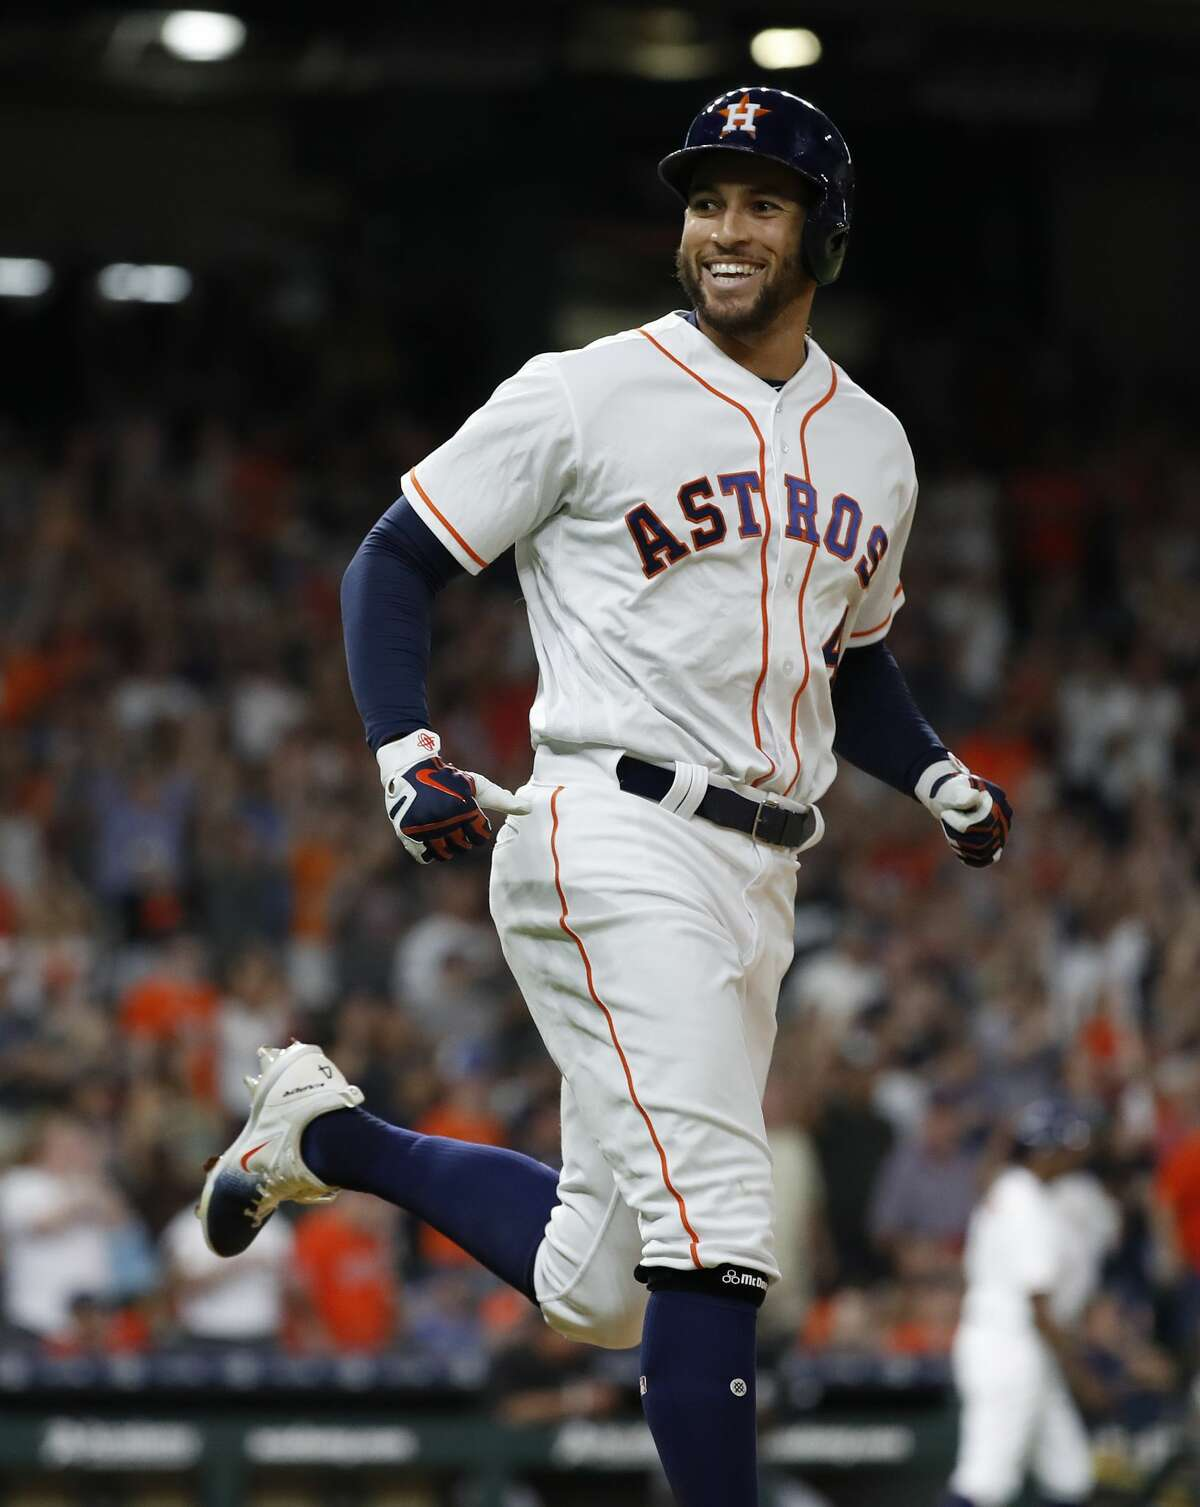 HOUSTON ASTROS WALK-UP SONGS George Springer Current song:No Cap (Future/Young Thug) Listen here Previous songs this season: Butterfly Effect (Travis Scott) Listen here Three Little Birds (Bob Marley) Listen here